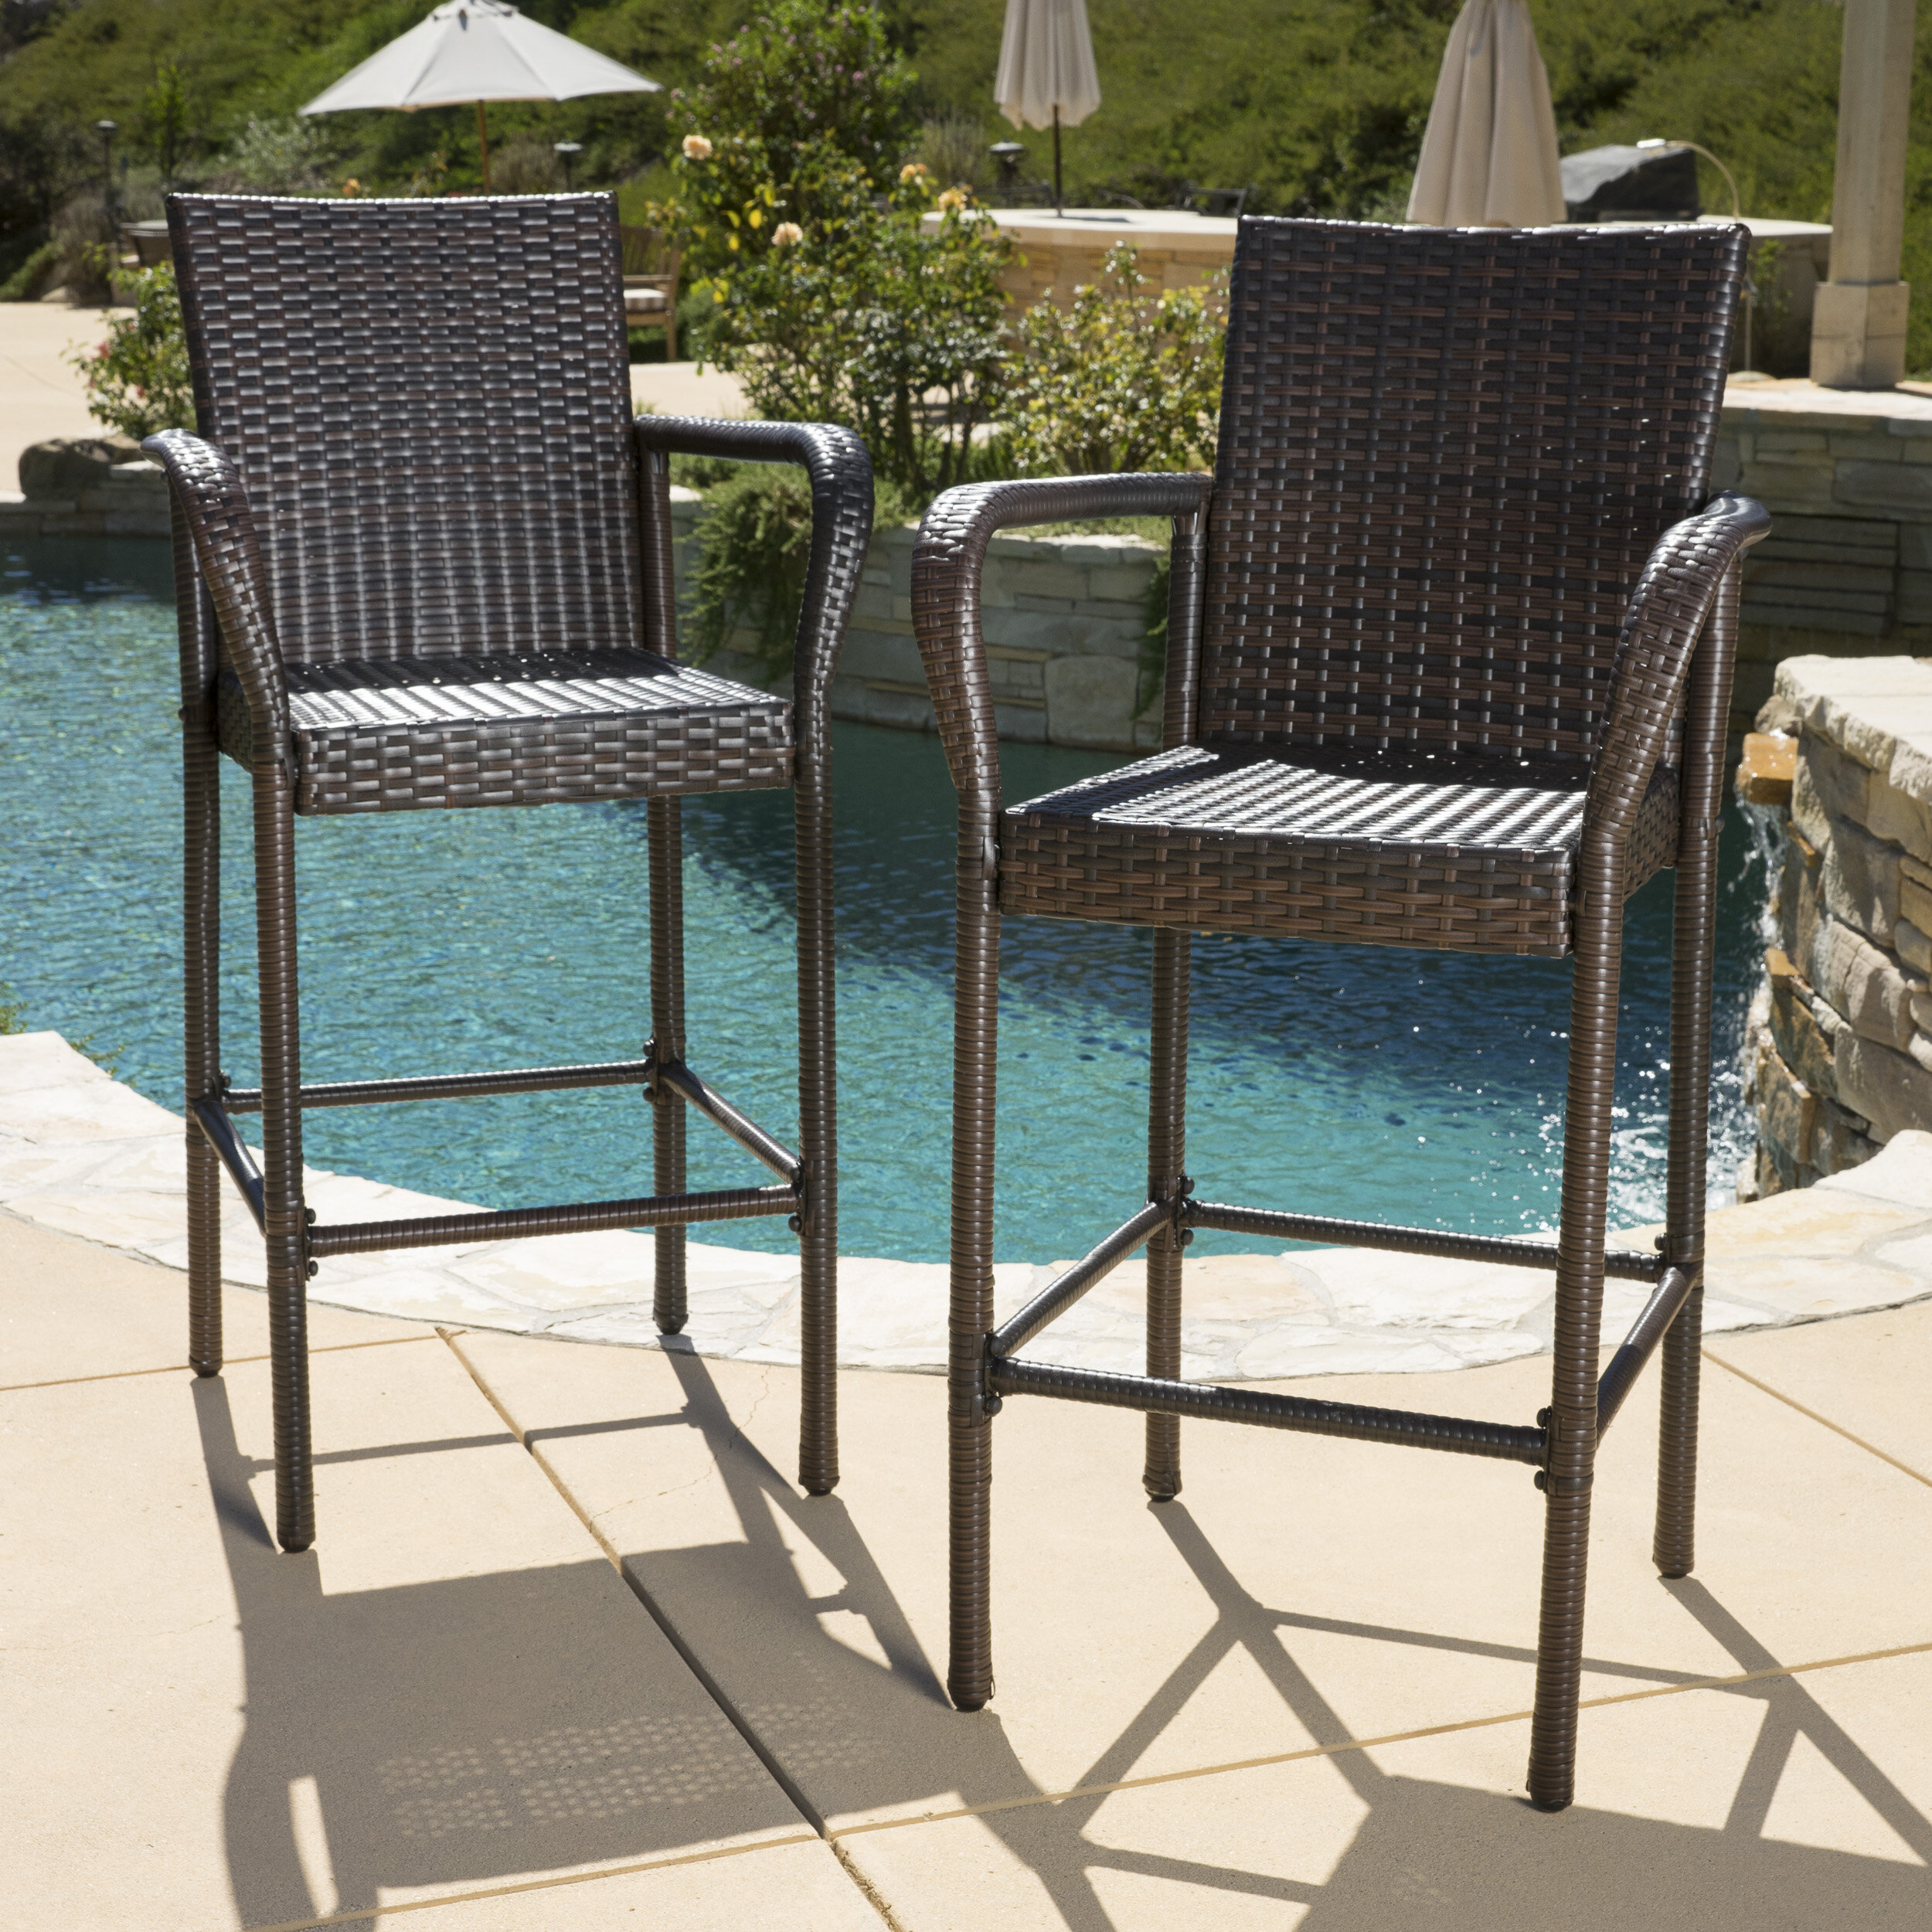 furniture size kcareesma designs bar full height design stools outdoor of photos awful dining stool barture patio info